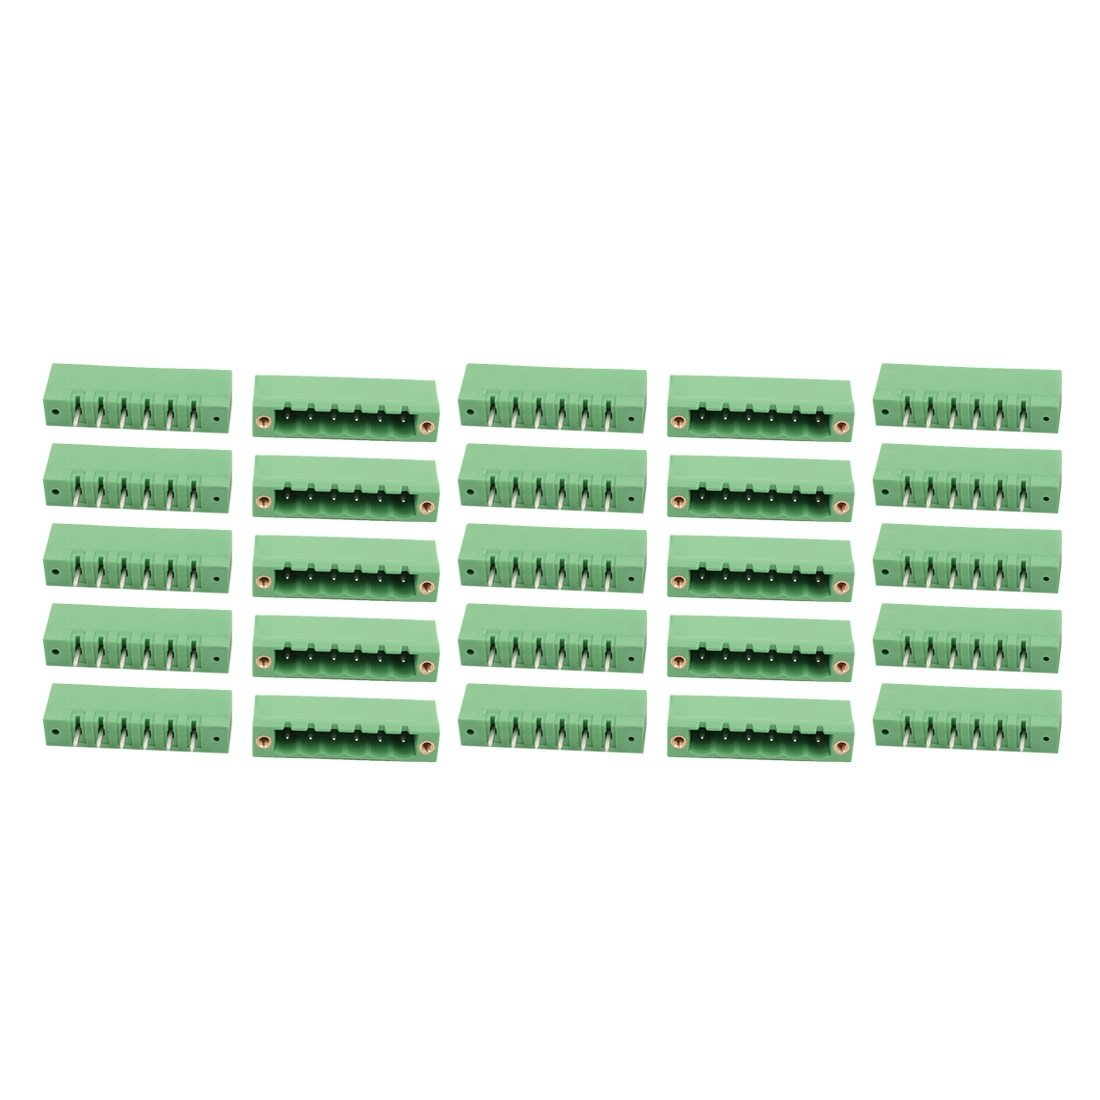 uxcell 25Pcs 5.0mm Pitch 6 Positions Terminal Block Wire Connection for PCB Mounting